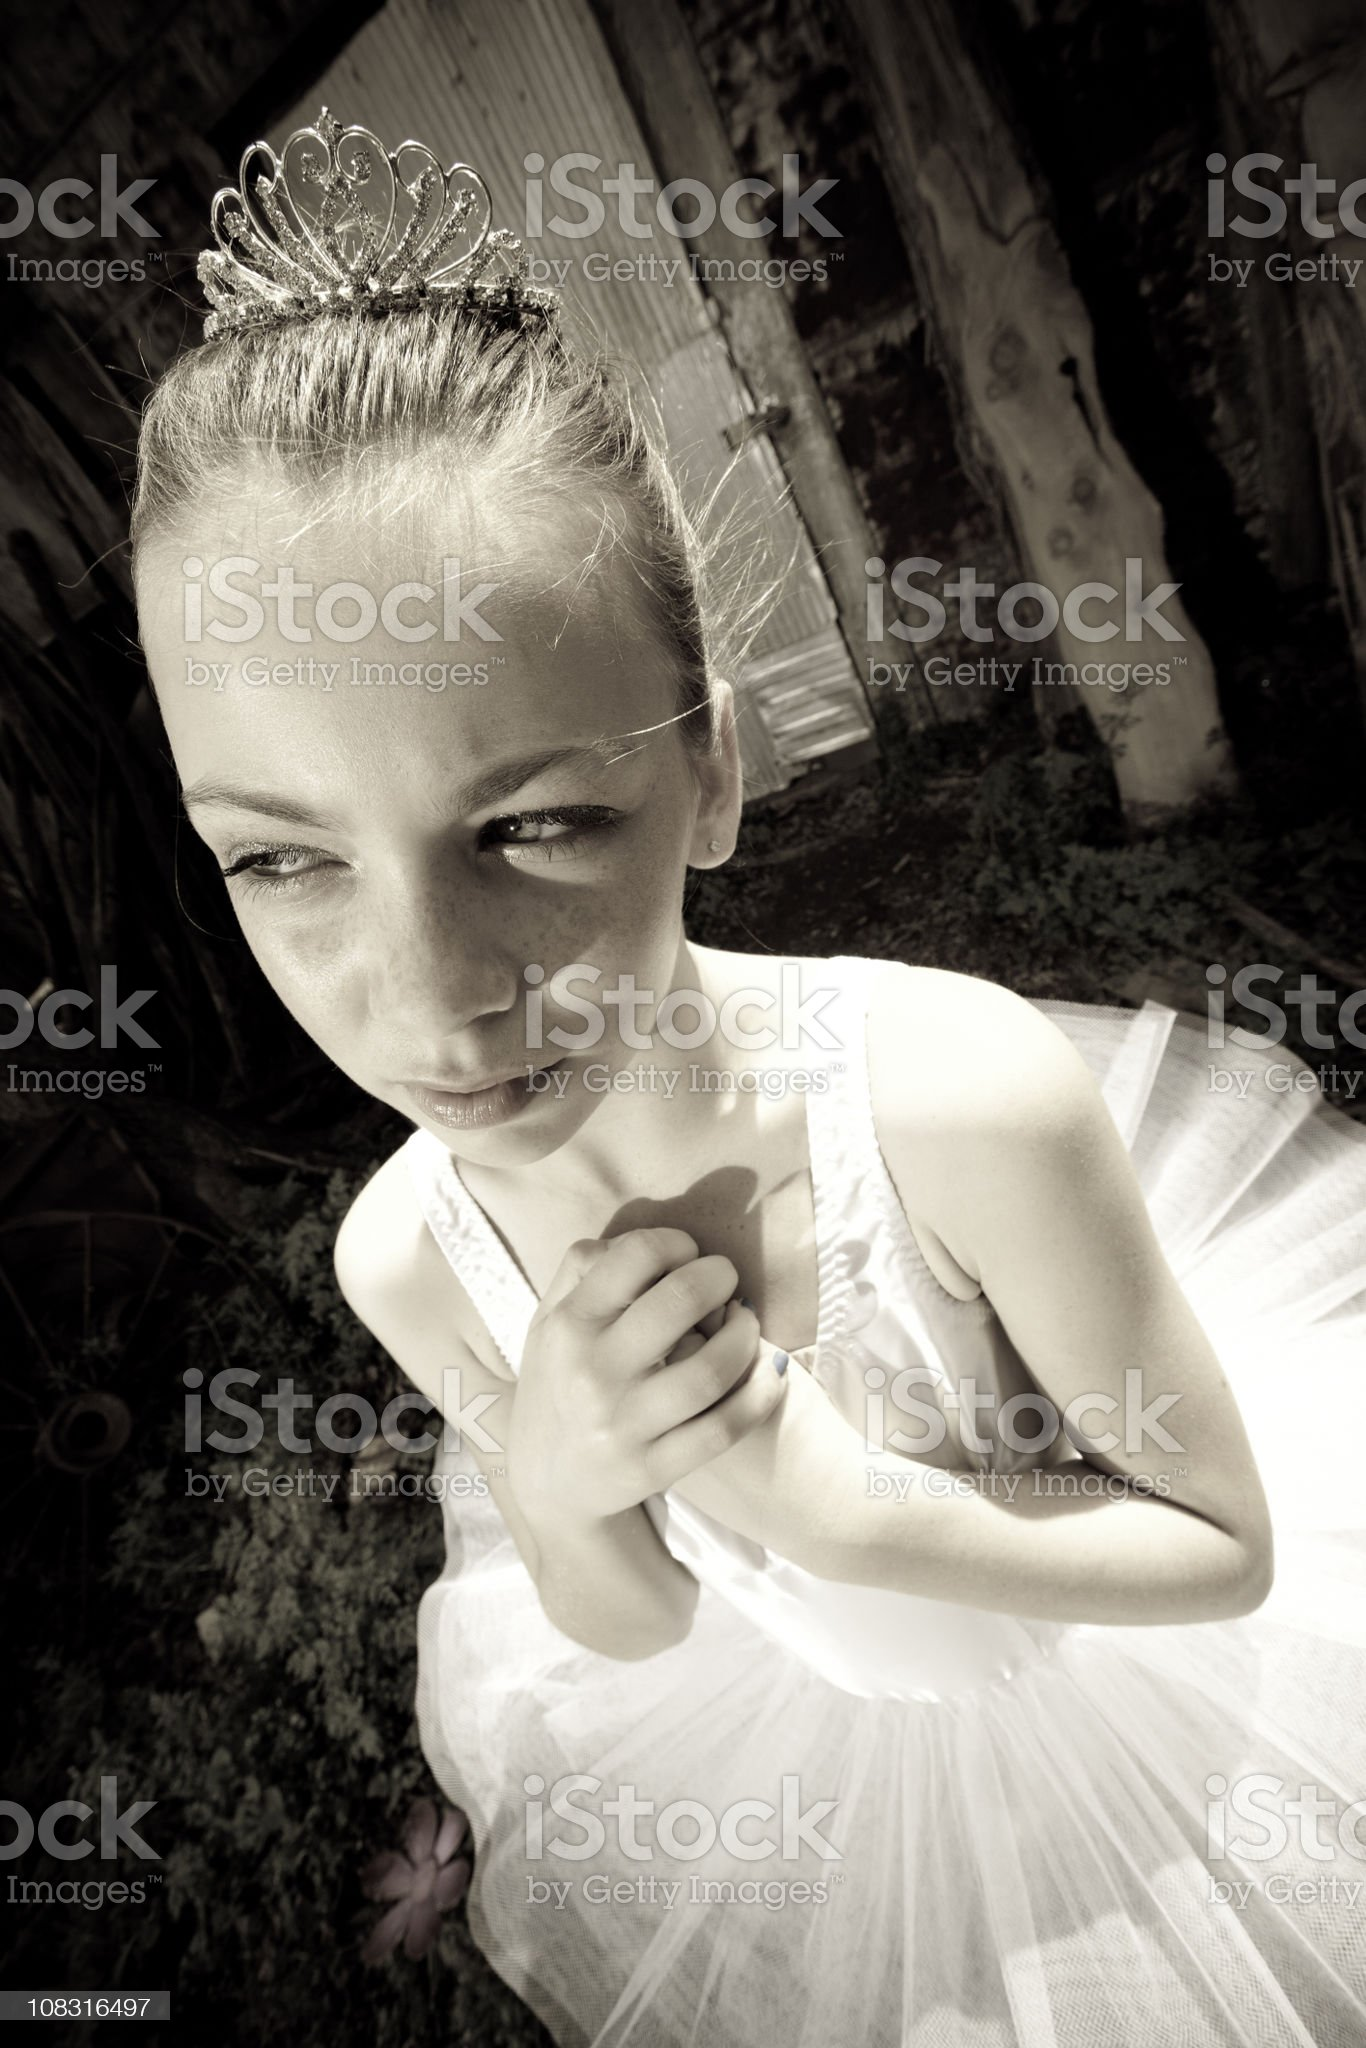 Young Princess Holding Her Hands to Chest royalty-free stock photo